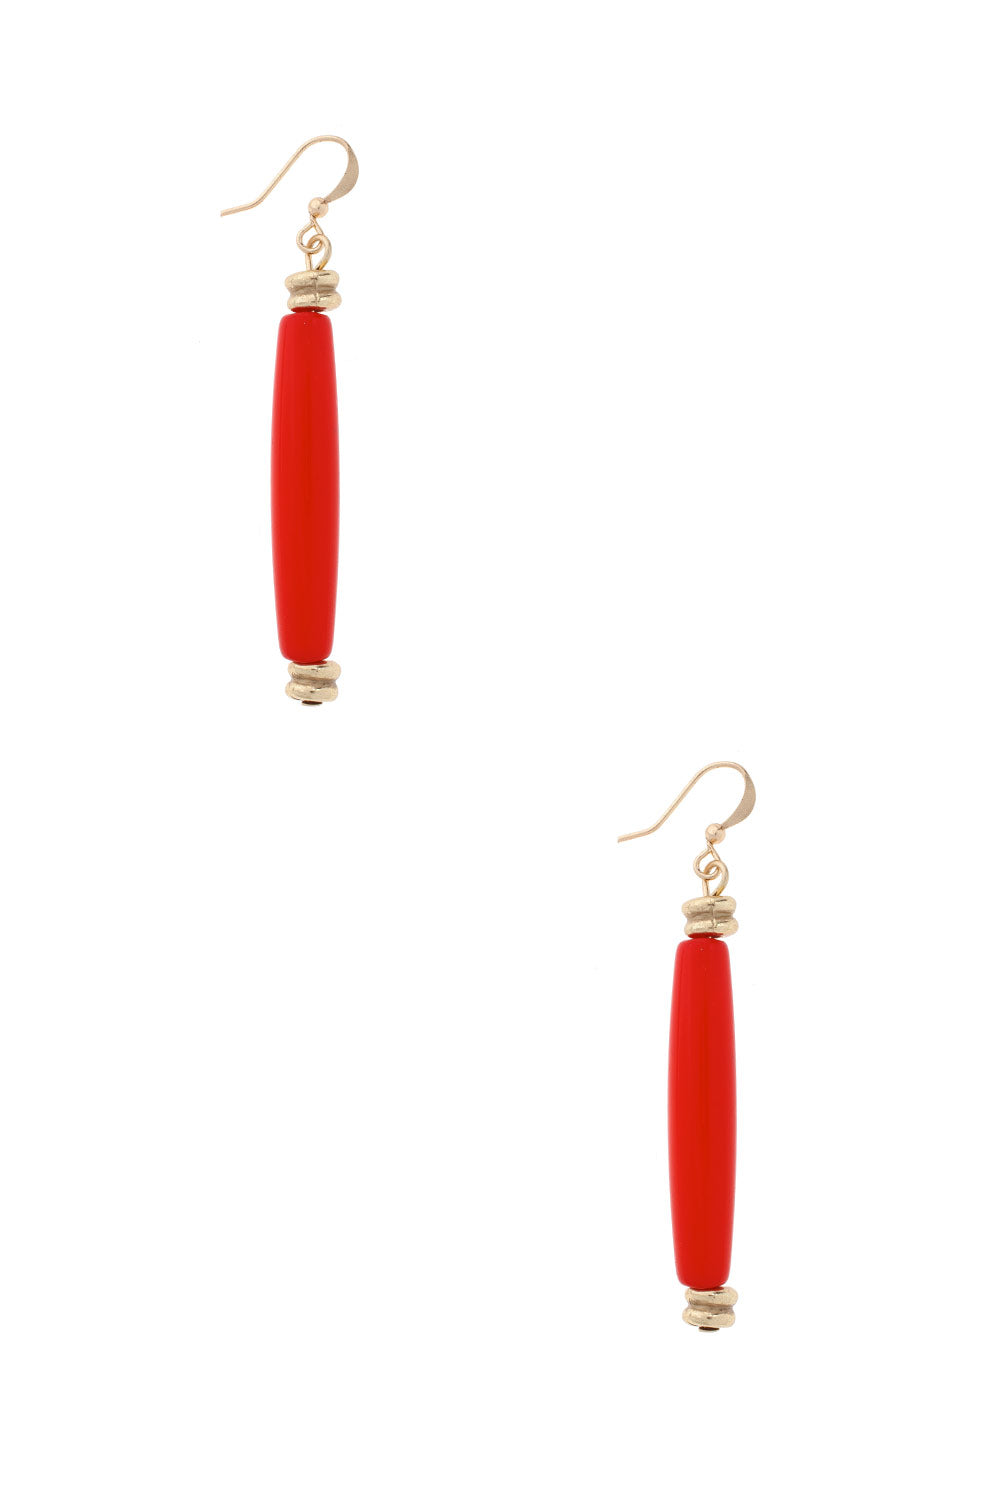 Type 3 Pillar of Strength Earrings